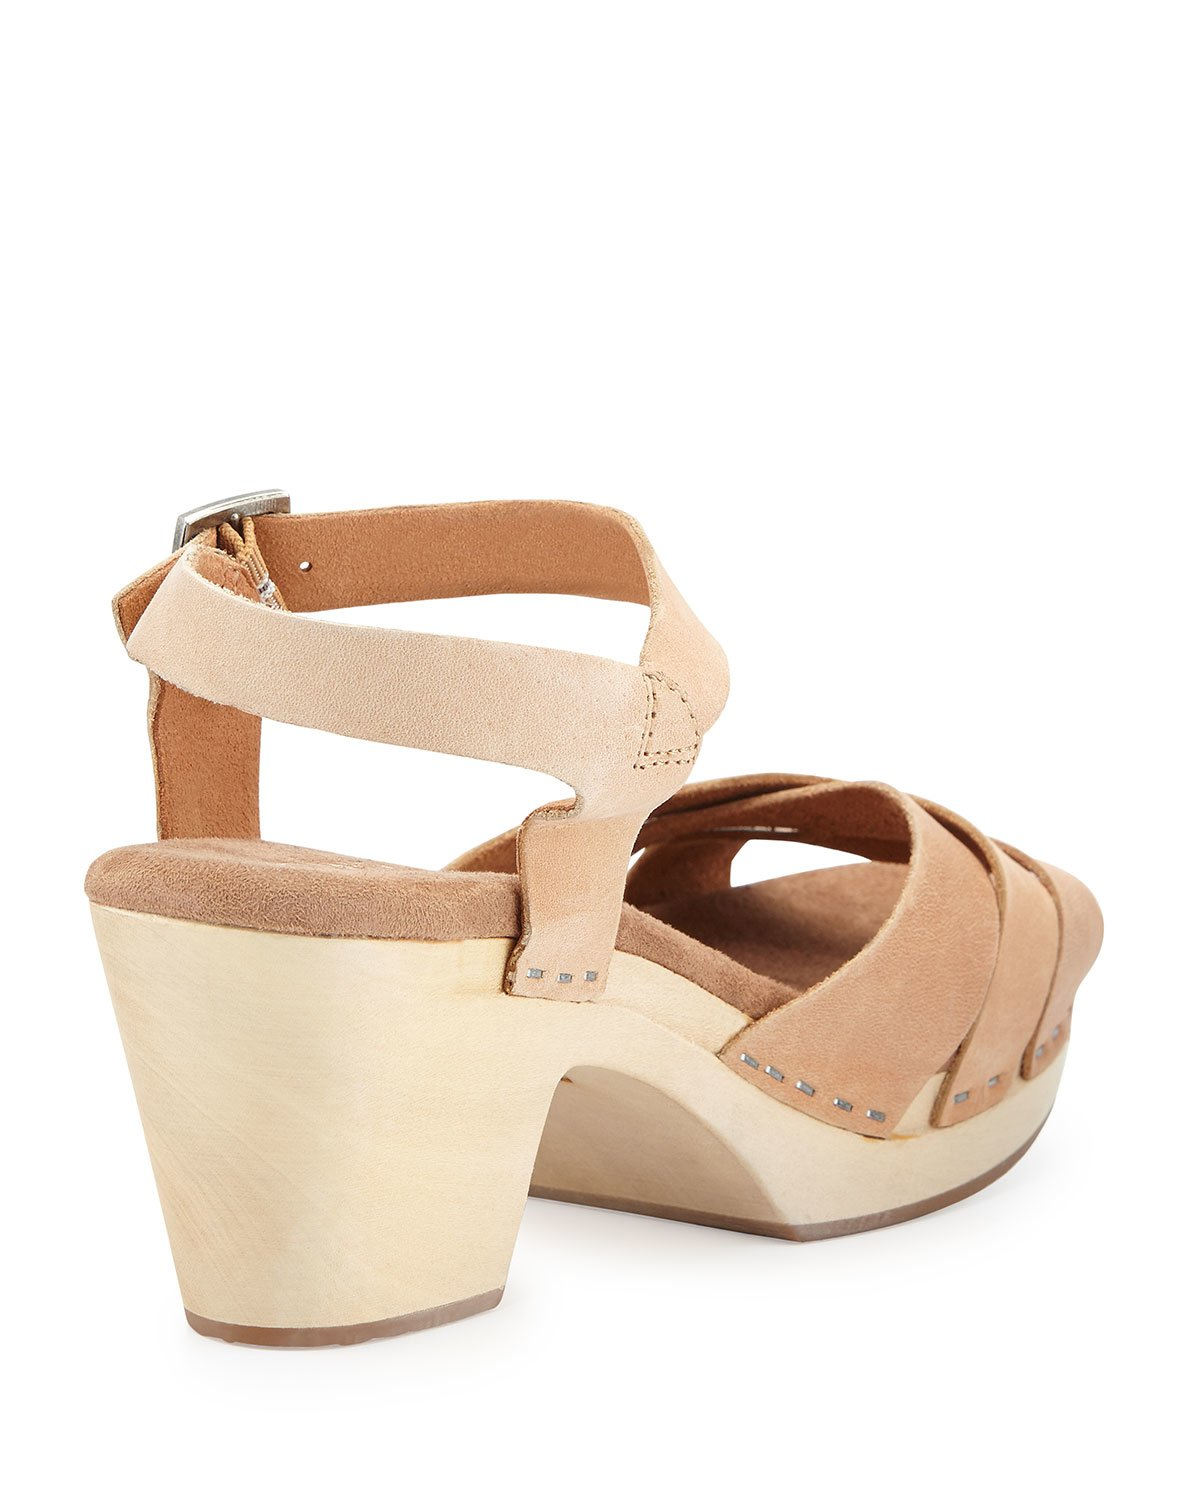 88d5a734731b0d Lyst - TOMS Beatrix Leather Clog Sandal in Brown